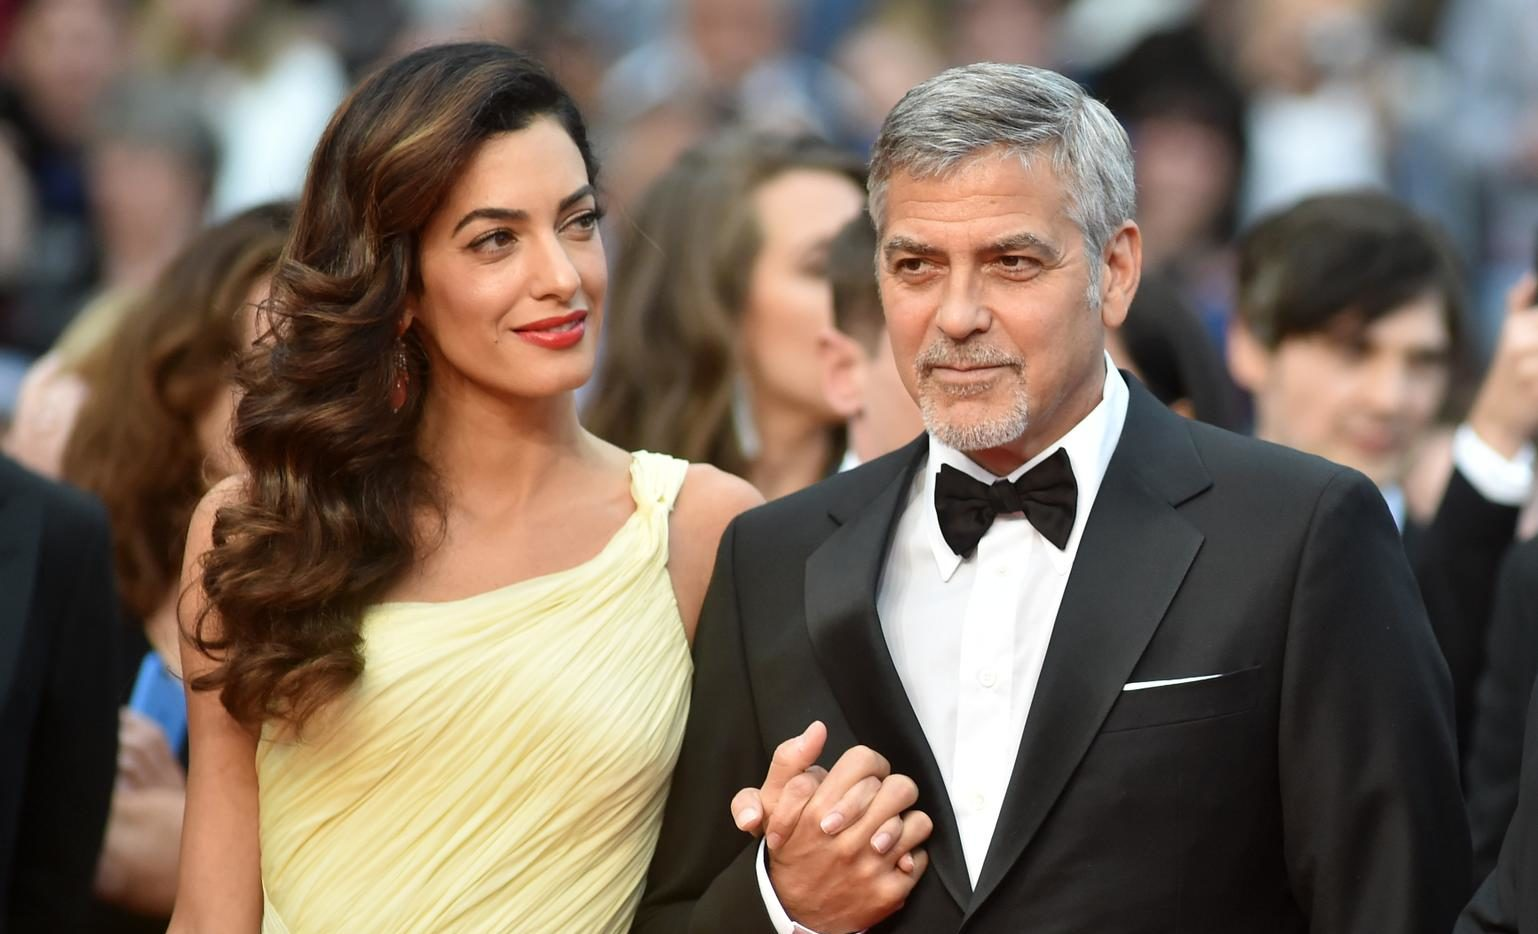 George Clooney and Amal Clooney to have a $500 Million Divorce